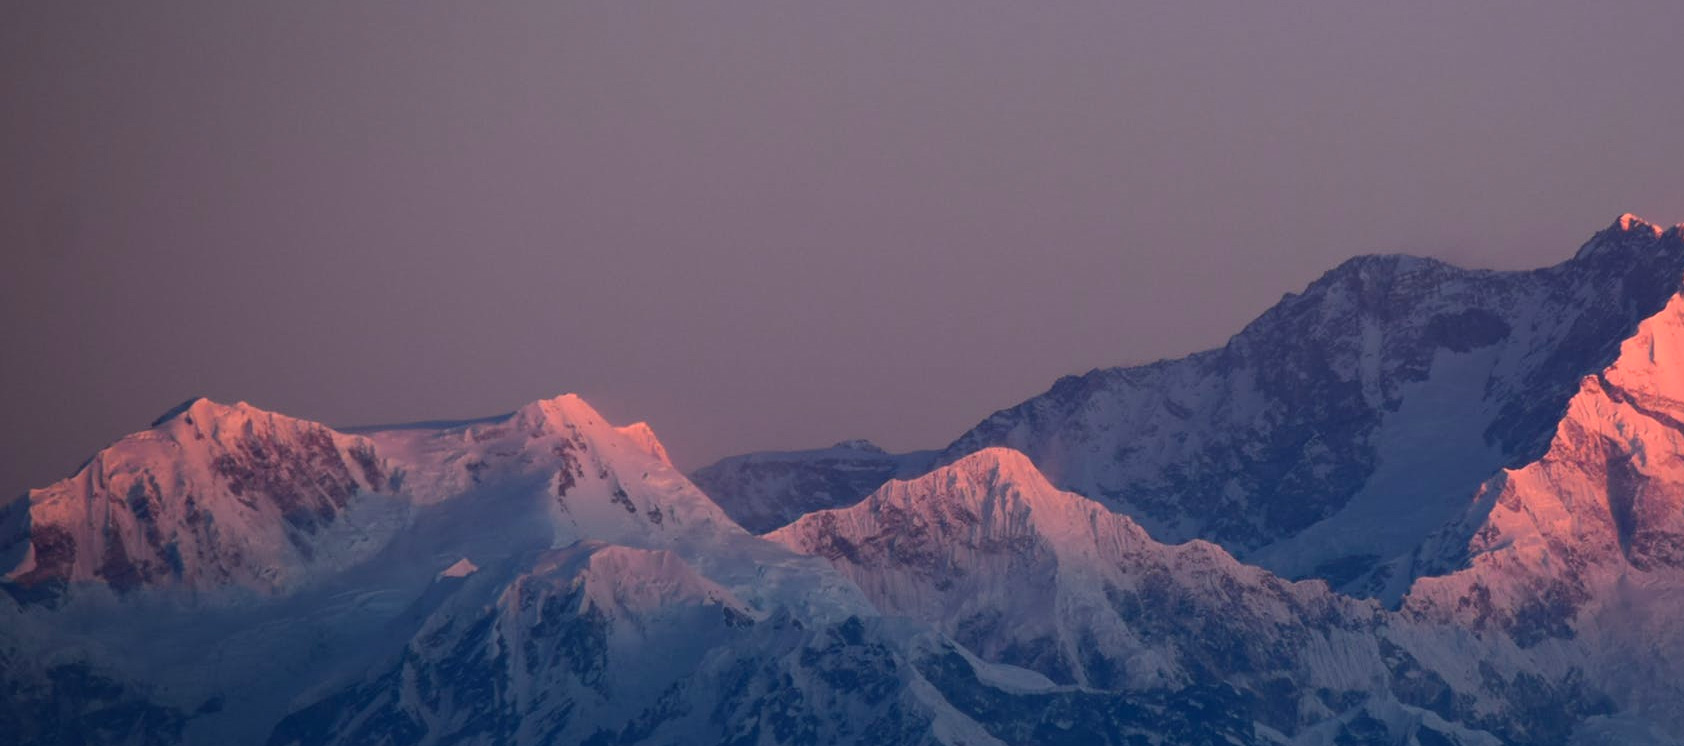 Photo of Mountains with Alpenglow